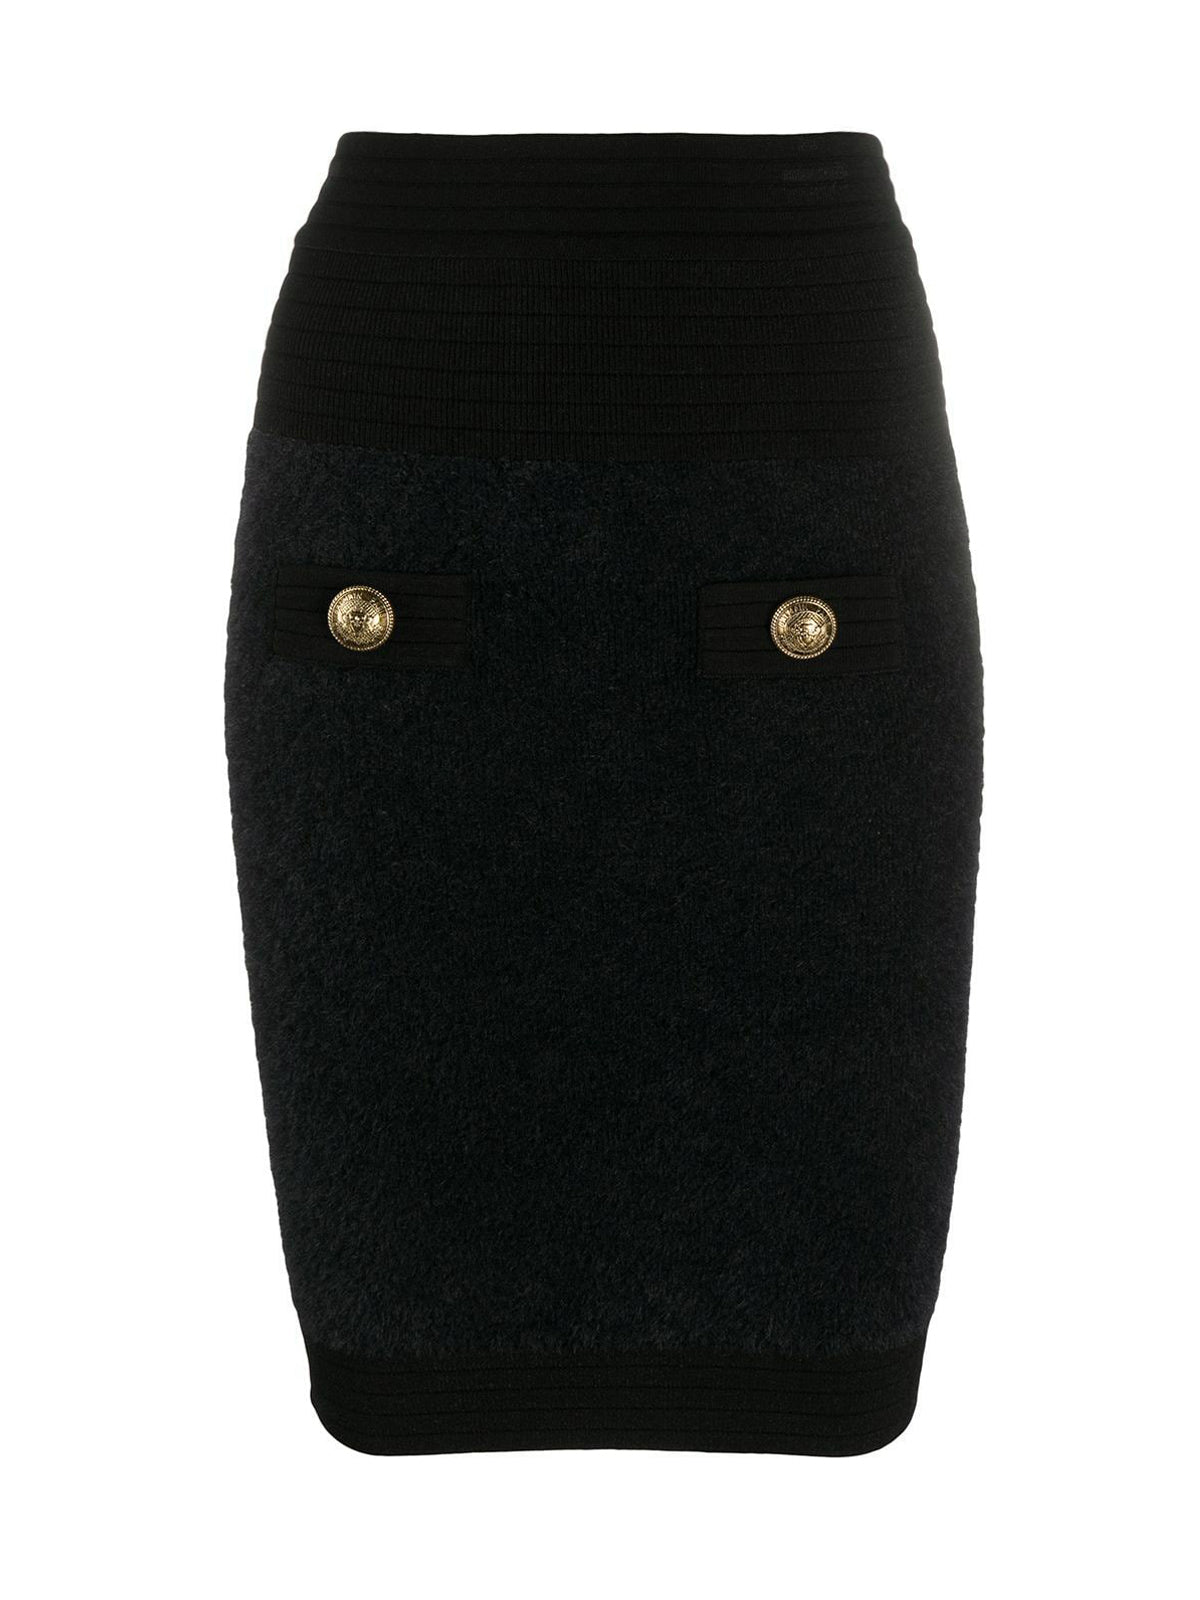 Skirt with embossed buttons